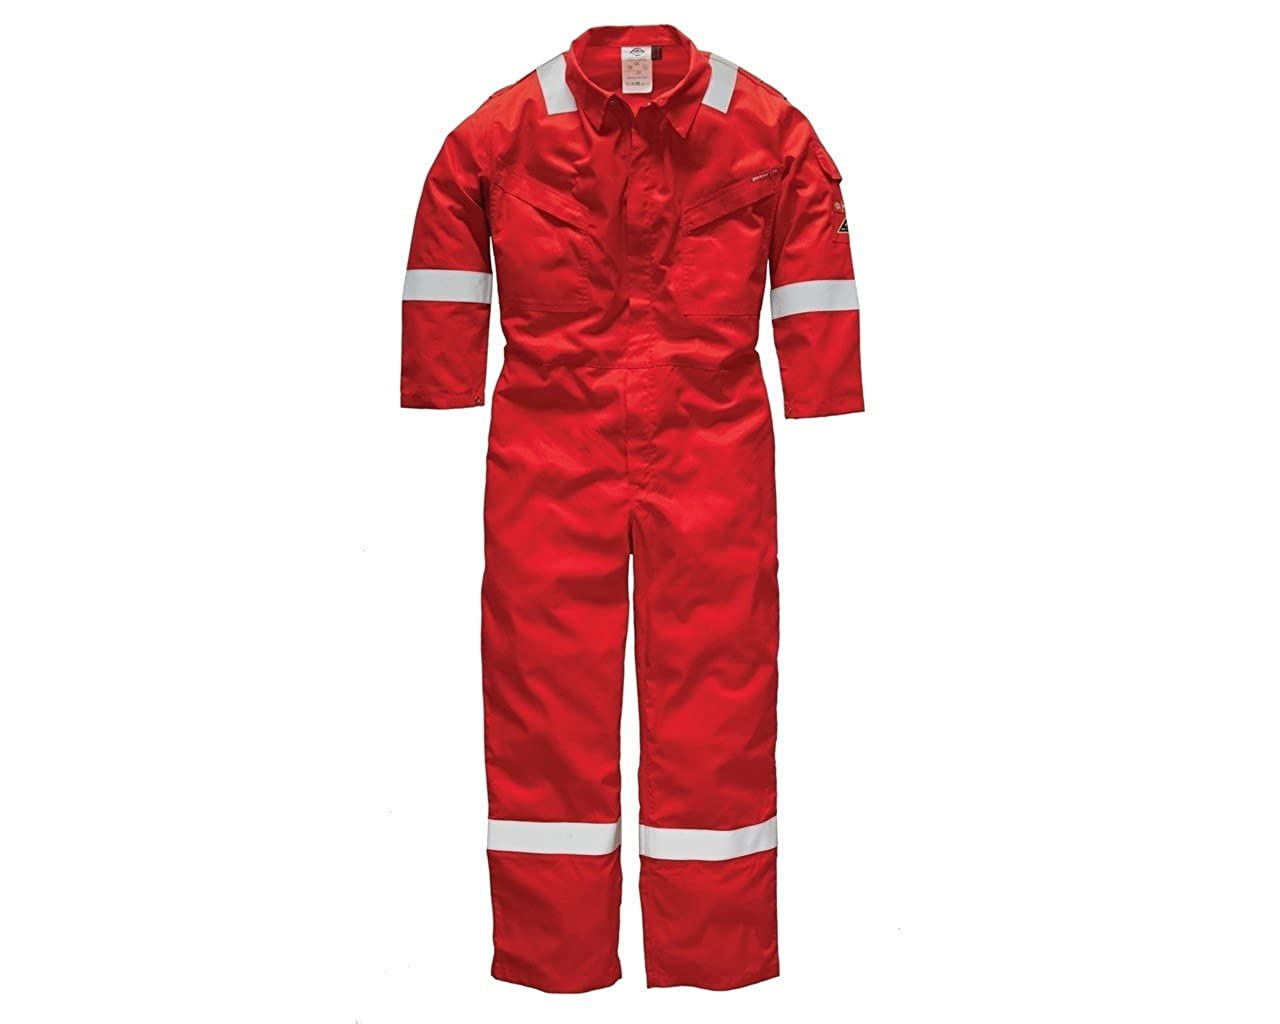 New Dickies WD5407 Flame Retardant Firechief High Visibility Daletec Lightweight Coverall Overall Boilersuit Regular 32'' Leg